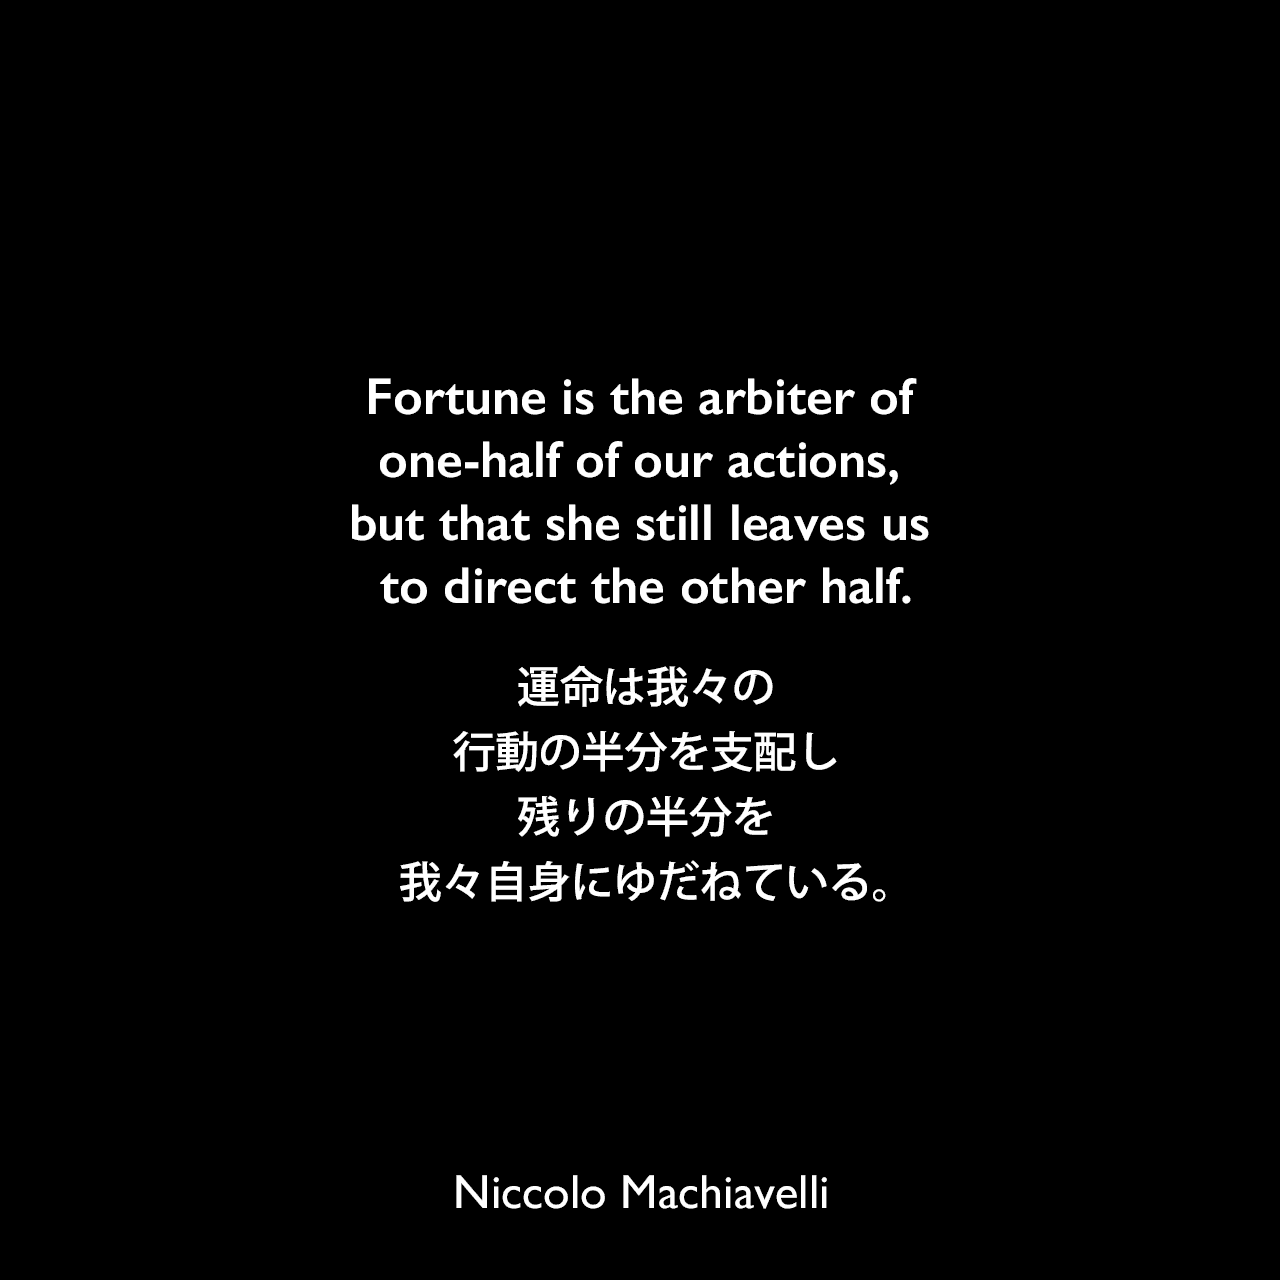 Fortune is the arbiter of one-half of our actions, but that she still leaves us to direct the other half.運命は我々の行動の半分を支配し、残りの半分を我々自身にゆだねている。Niccolo Machiavelli